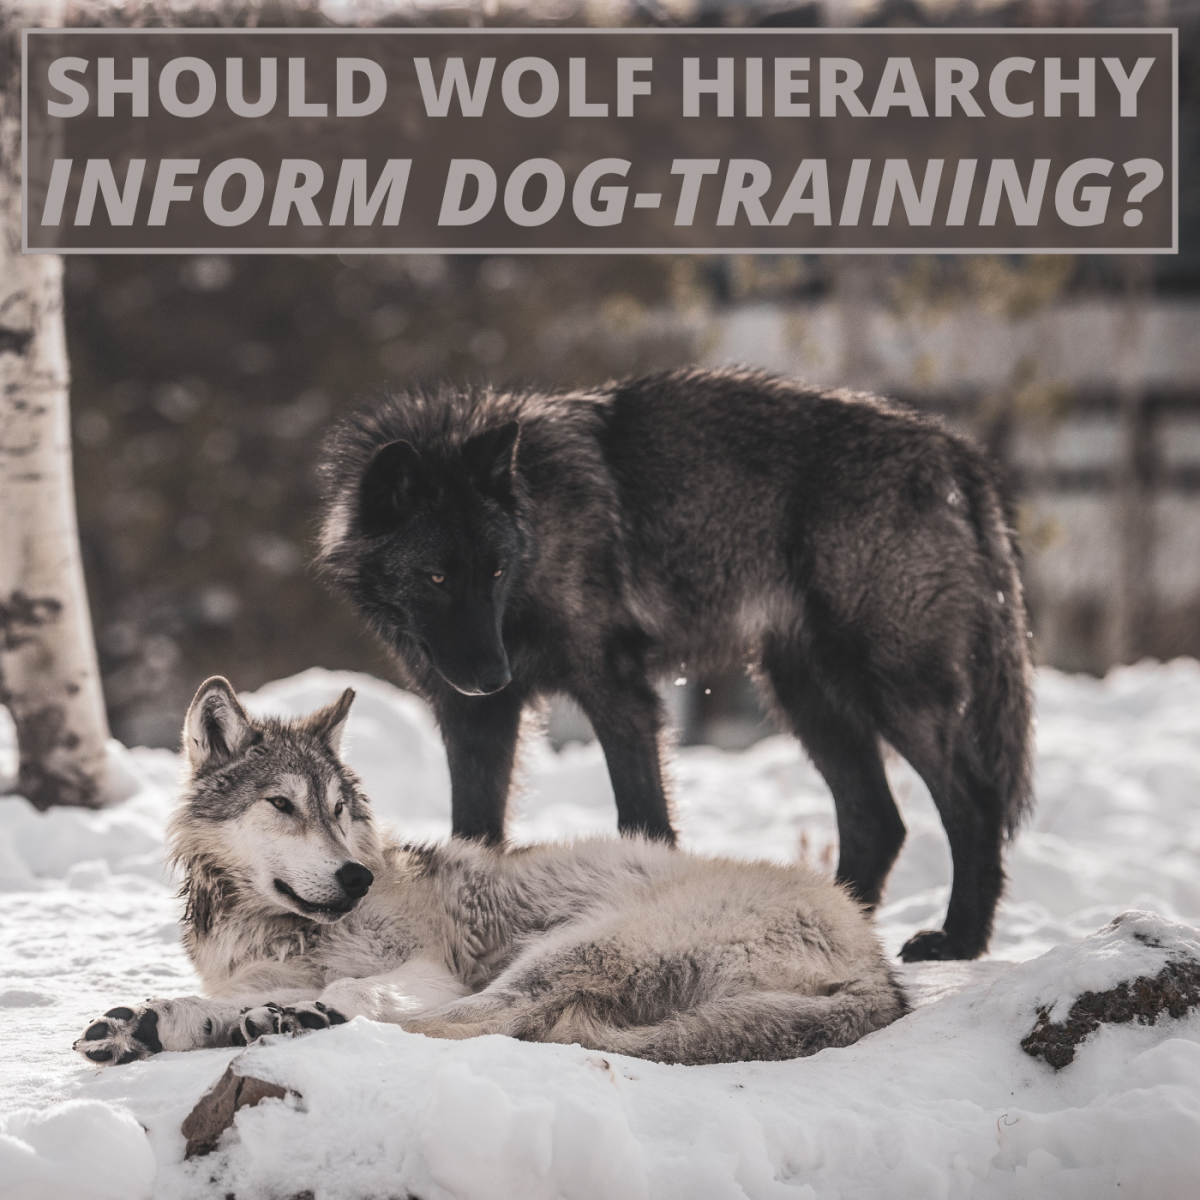 Early theories about wolf behavior led dog trainers to use authoritarian methods of behavior modification. This is no longer the norm.